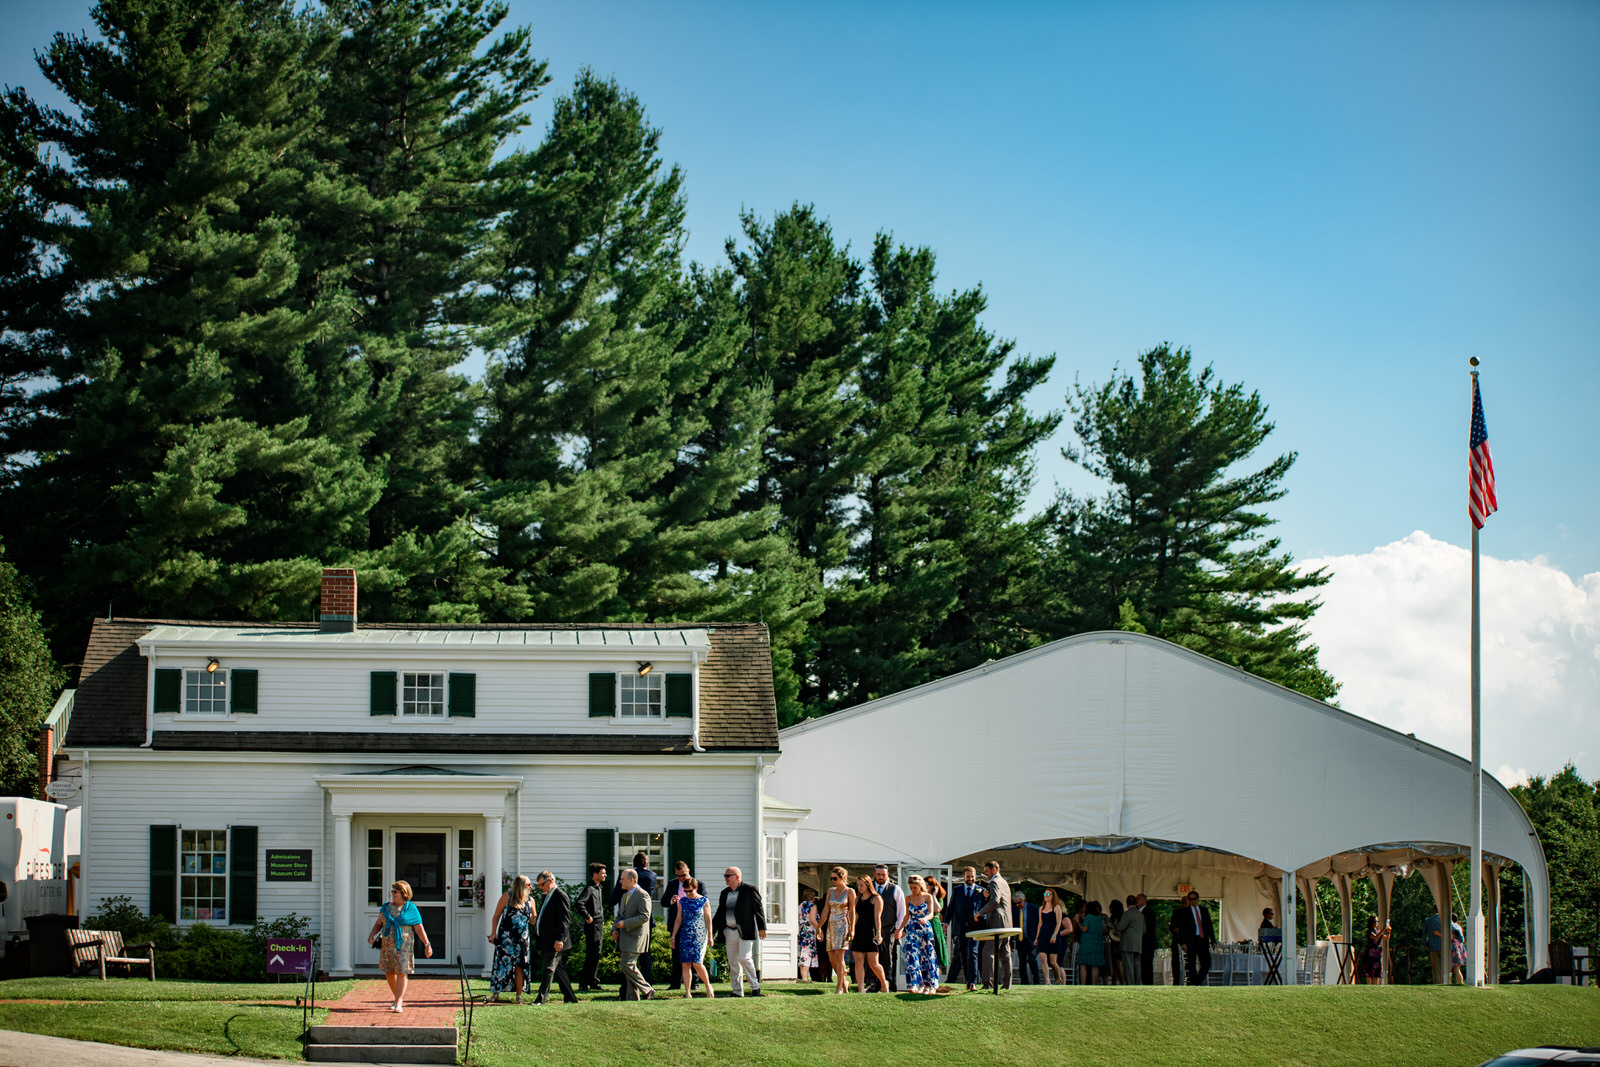 backdrop to fruitlands museum tent and building